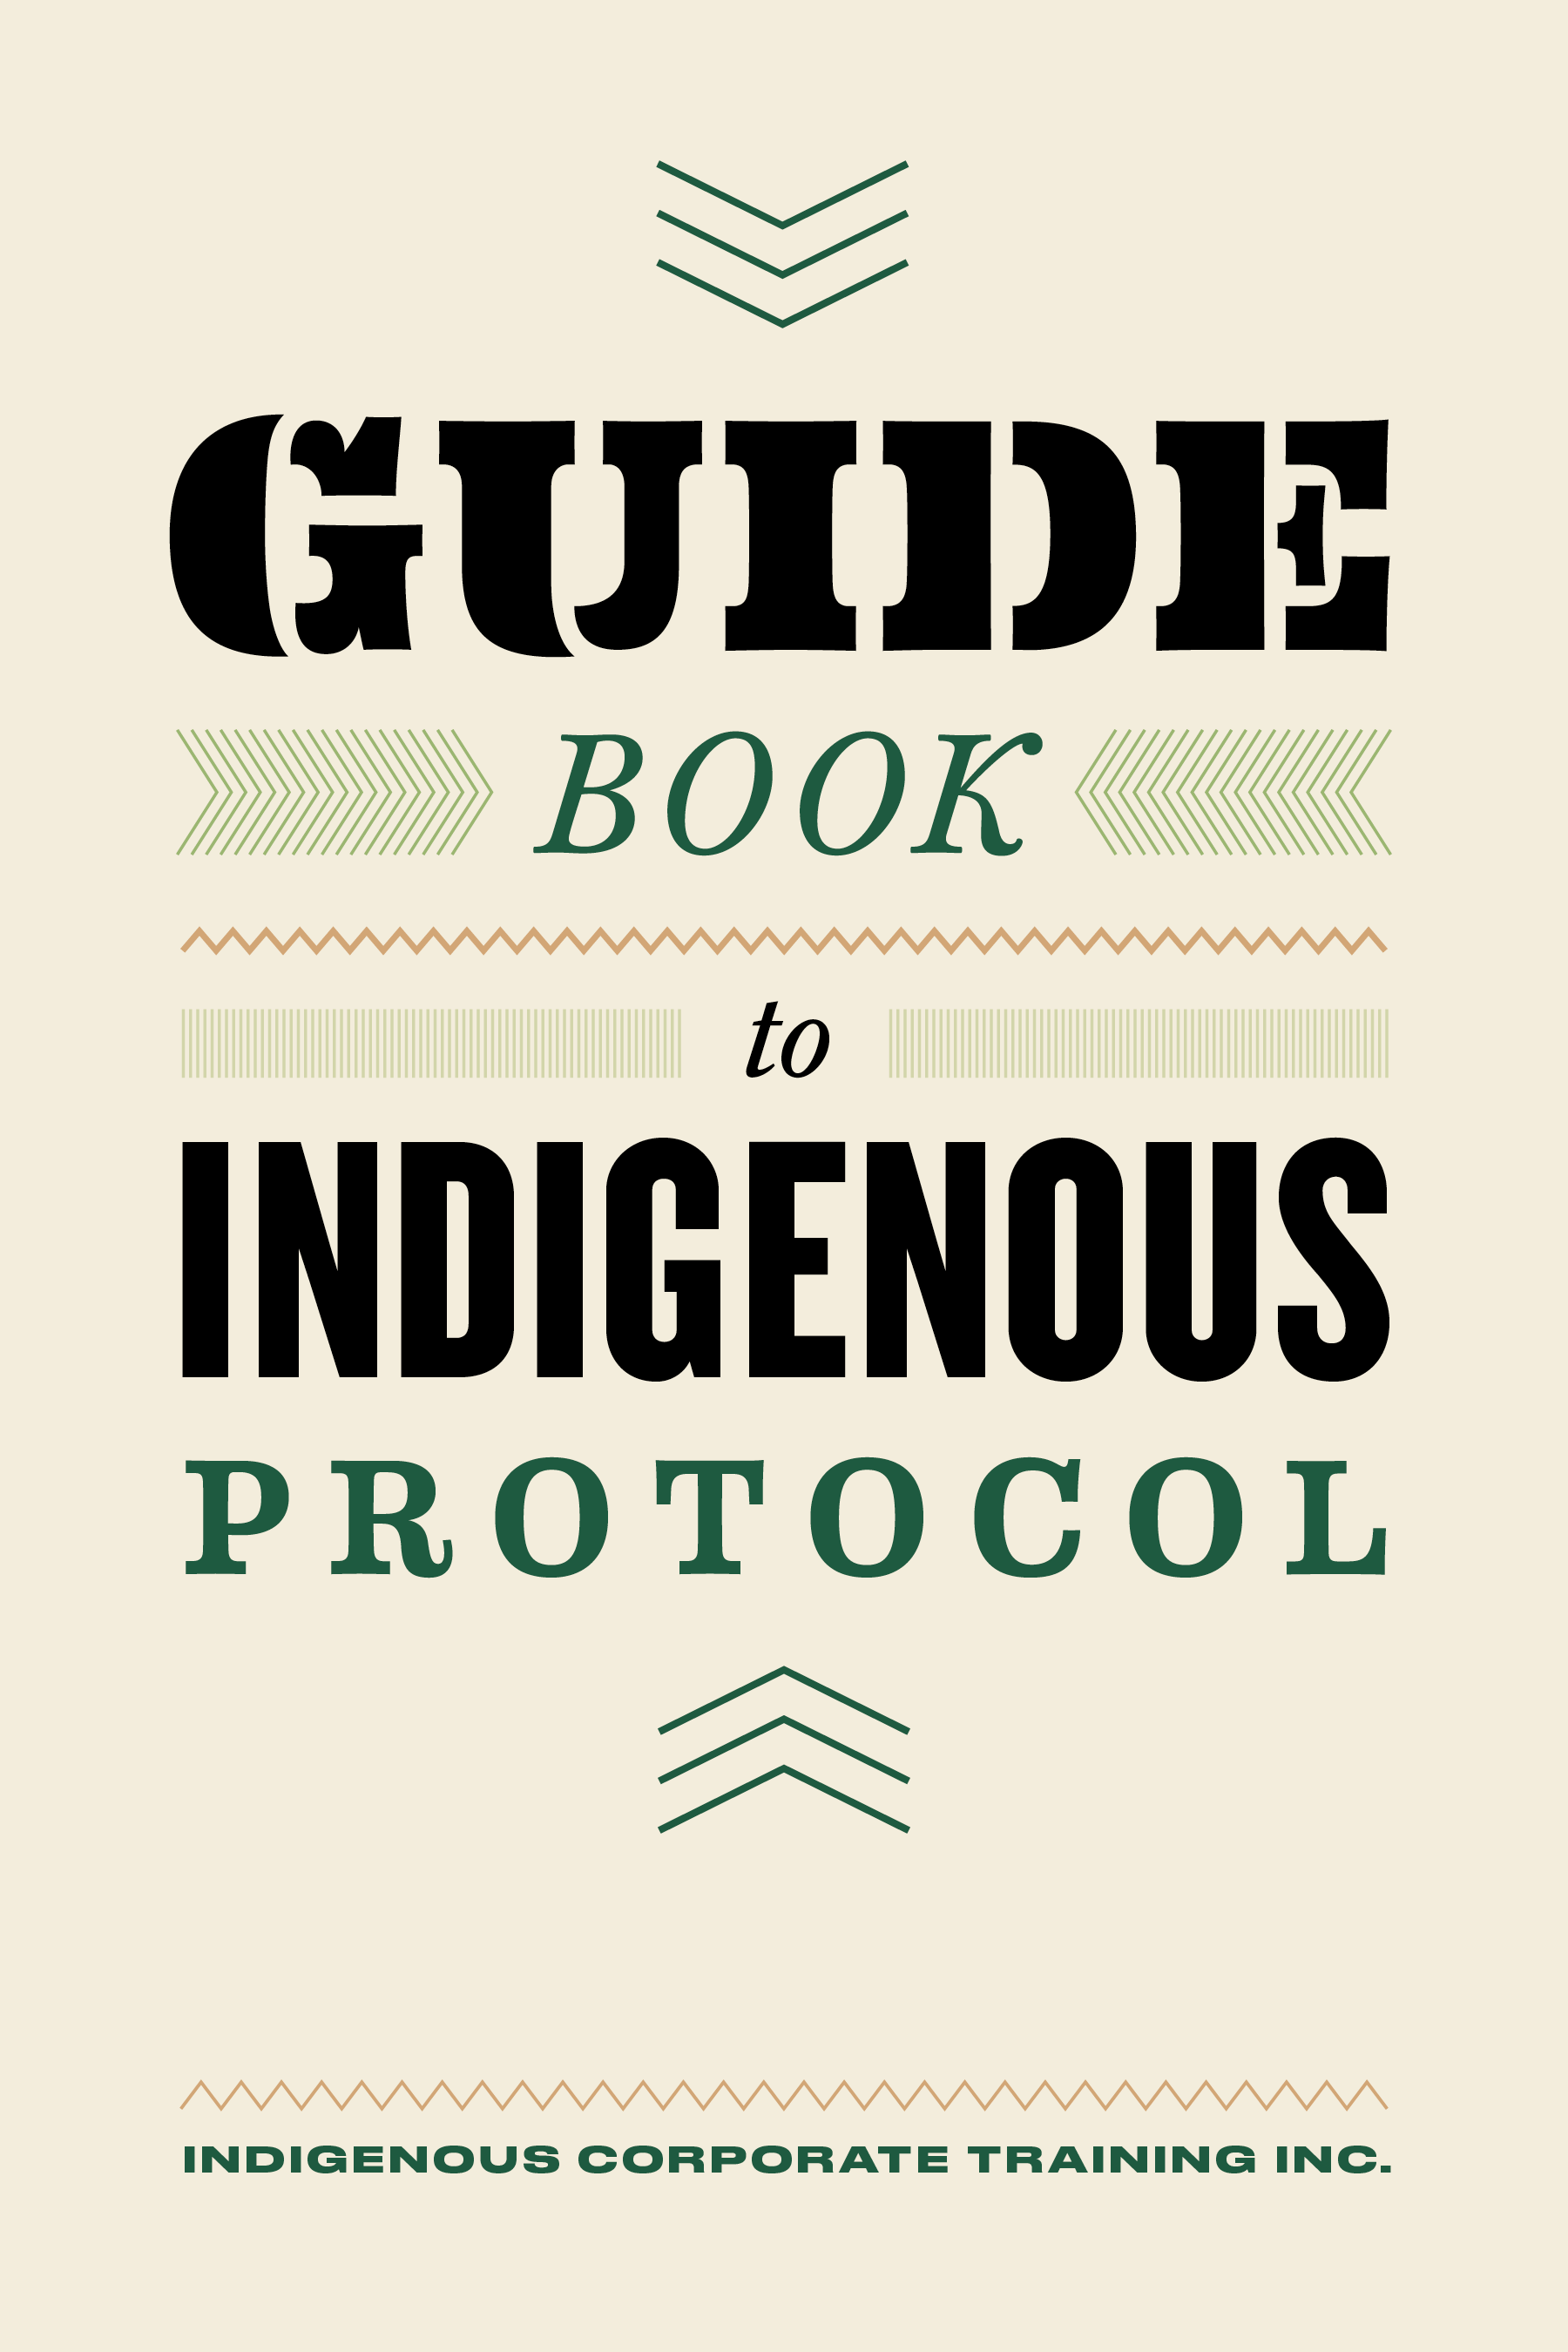 Bob Joseph eBook Covers_F_Guidebook to Indigenous Protocol_FINAL